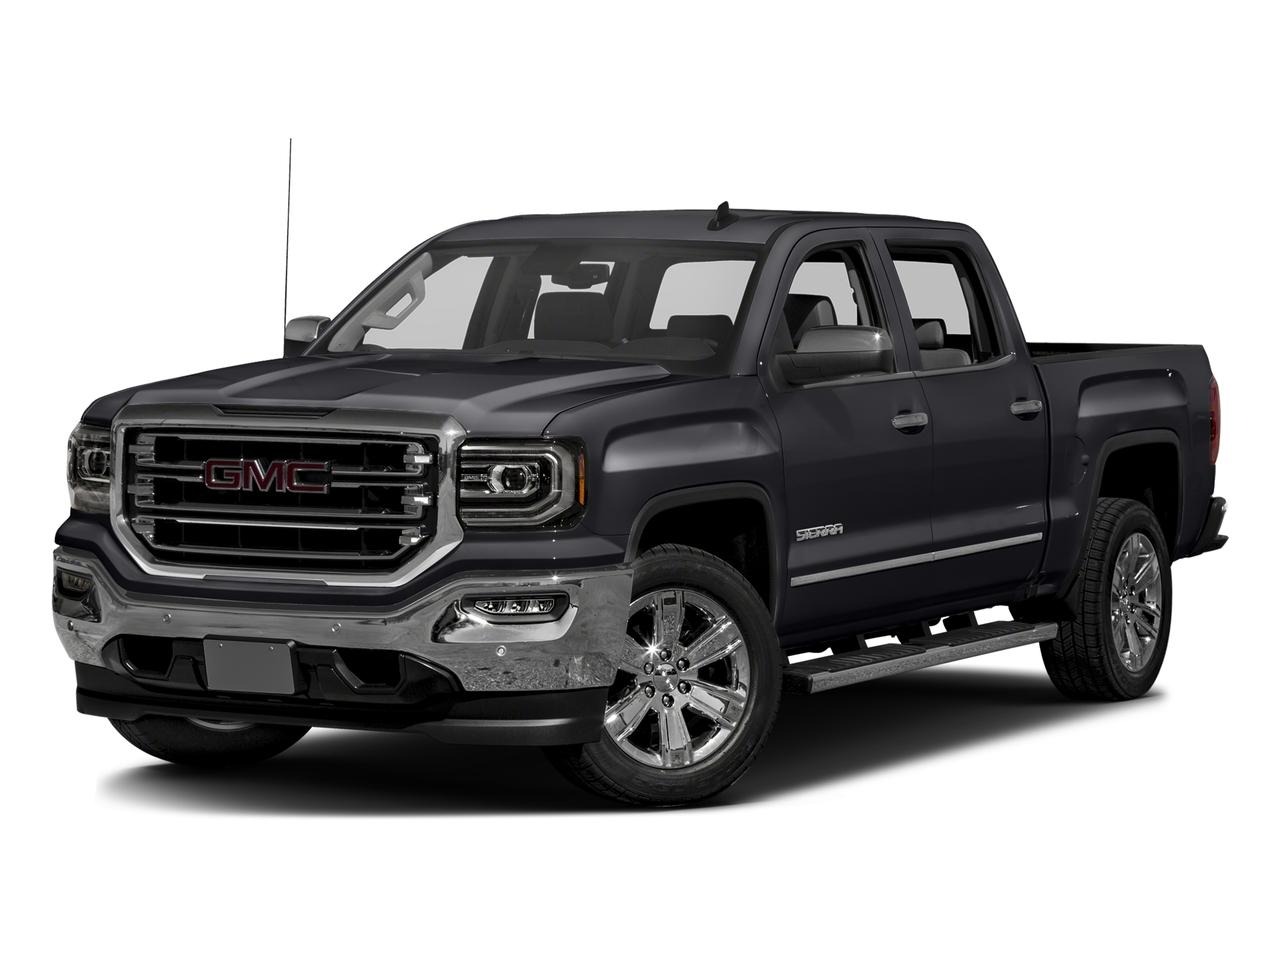 2017 GMC Sierra 1500 Vehicle Photo in Middleton, WI 53562